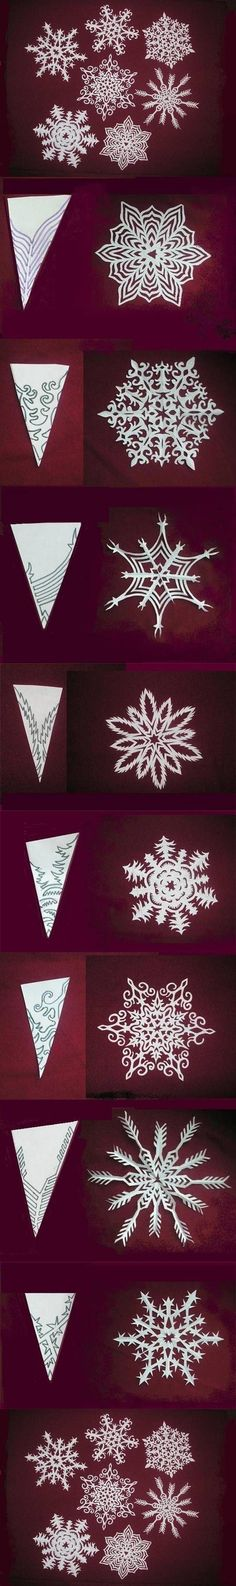 DIY Snowflakes Paper Pattern #crafts #crafting